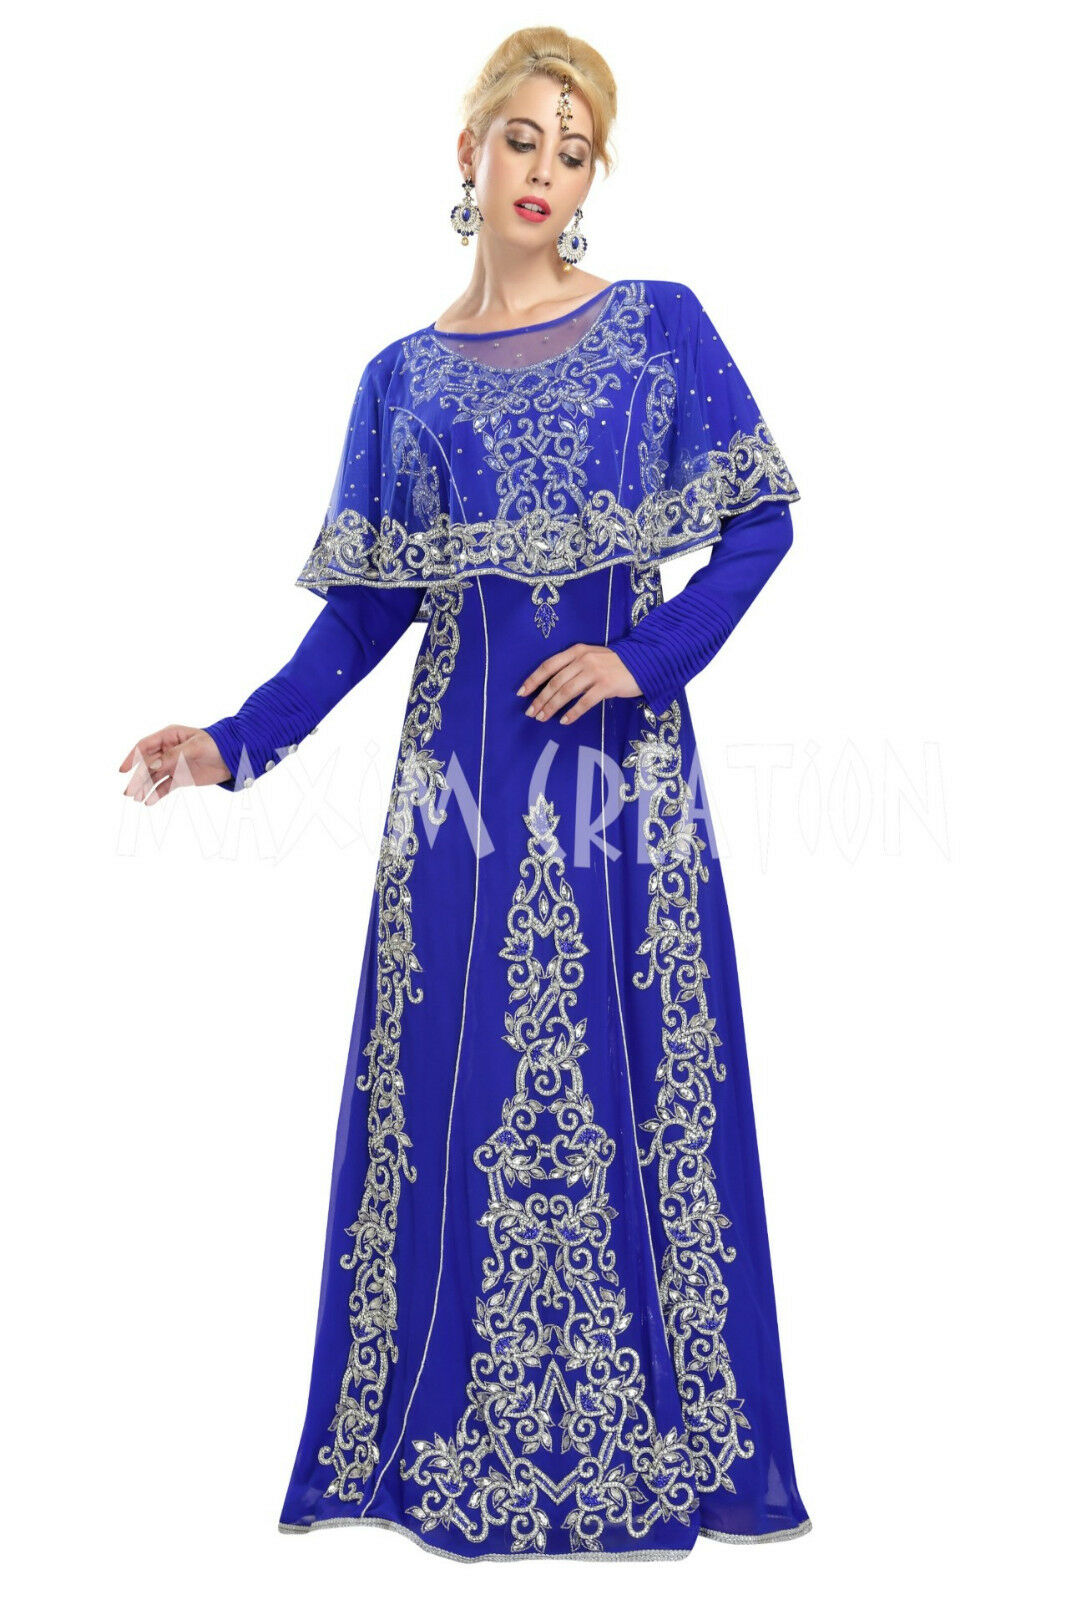 b42c8bdd803d ROYAL LUXURIOUS WEDDING GOWN MARRIED CAFTAN WITH HAND MADE EMBROIDERY 5843